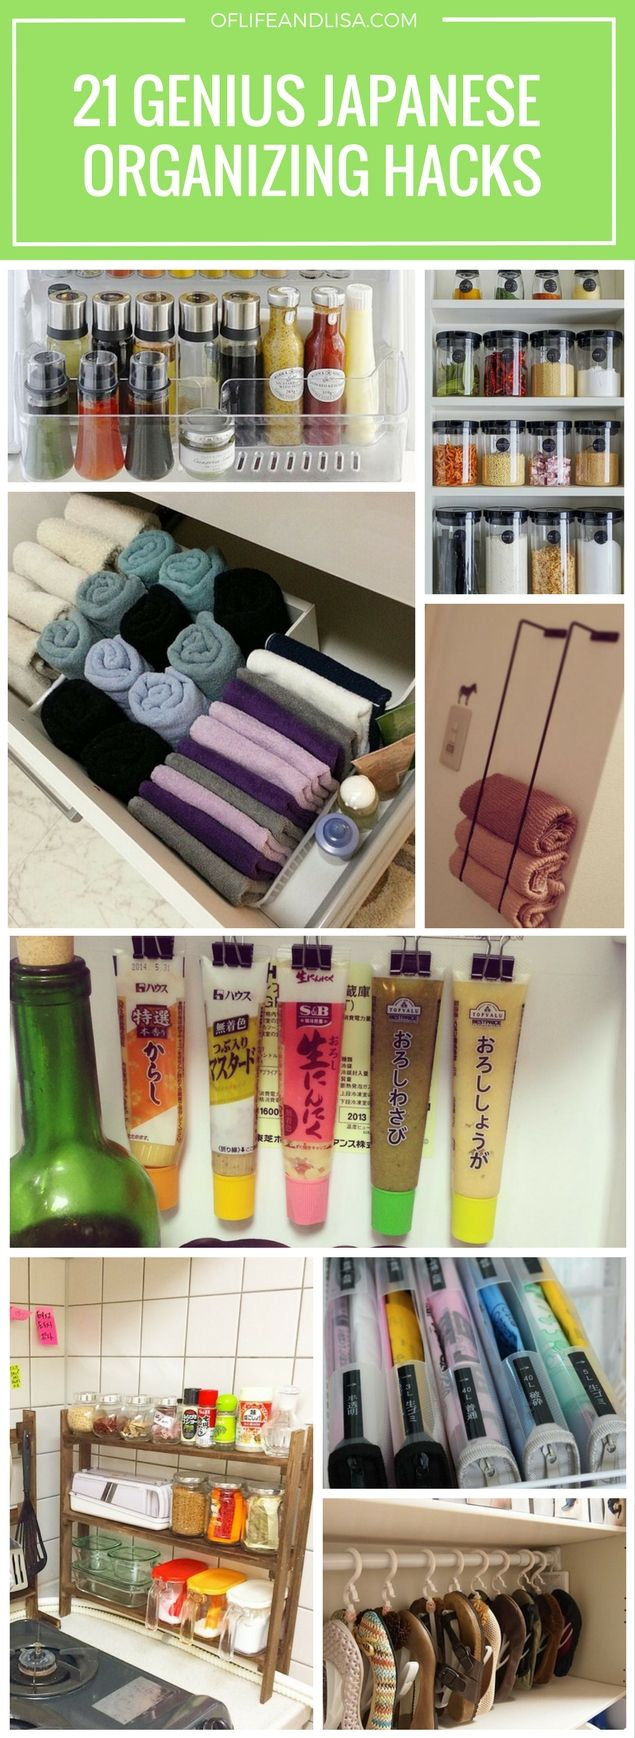 Small space organizing hacks inspired by Japanese natives.